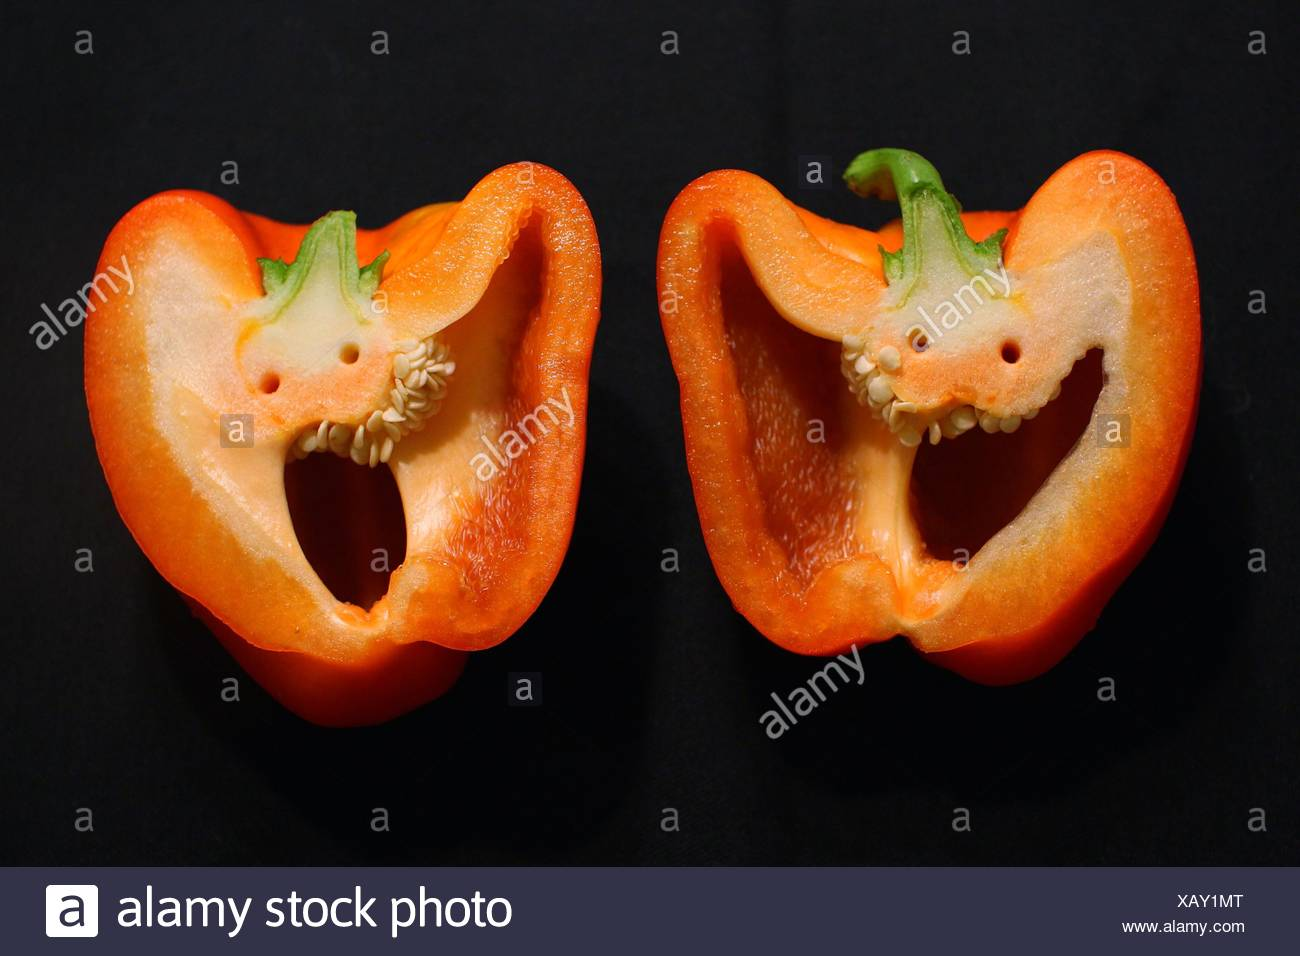 Cut Orange Bell Pepper Against Black Background - Stock Image